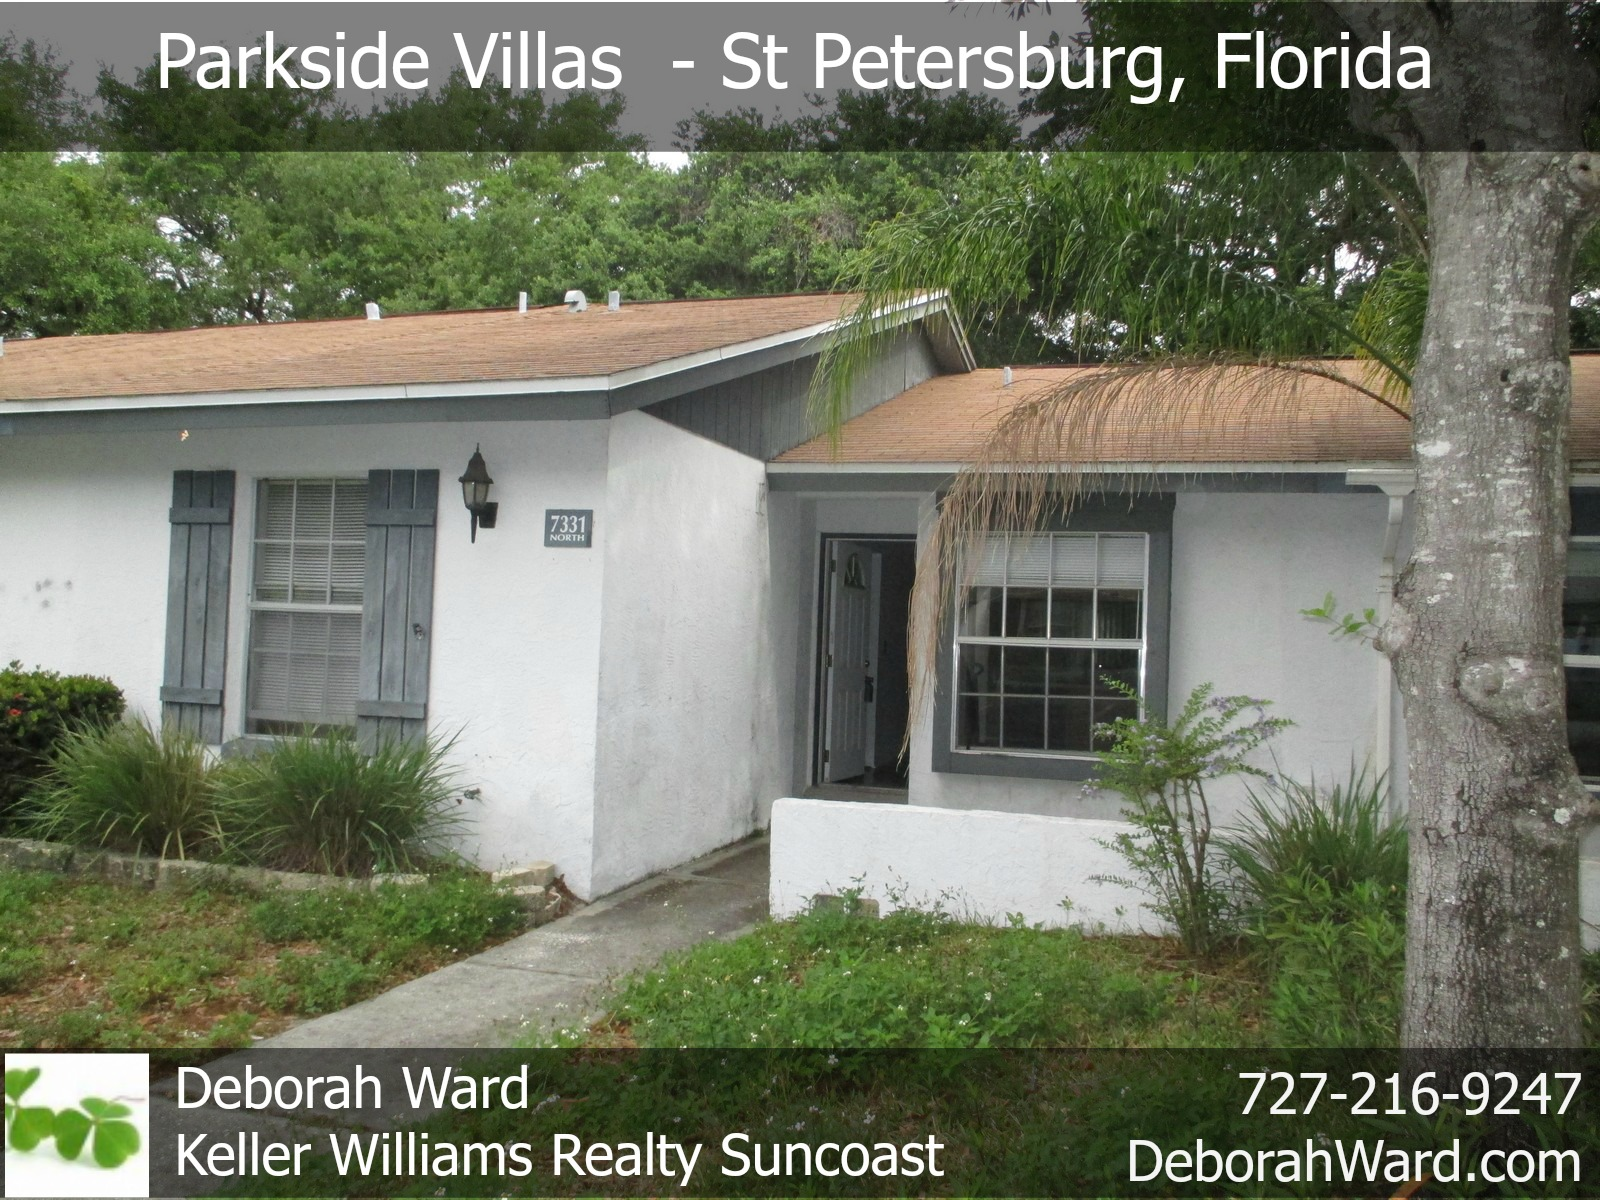 St Petersburg Florida Real Estate